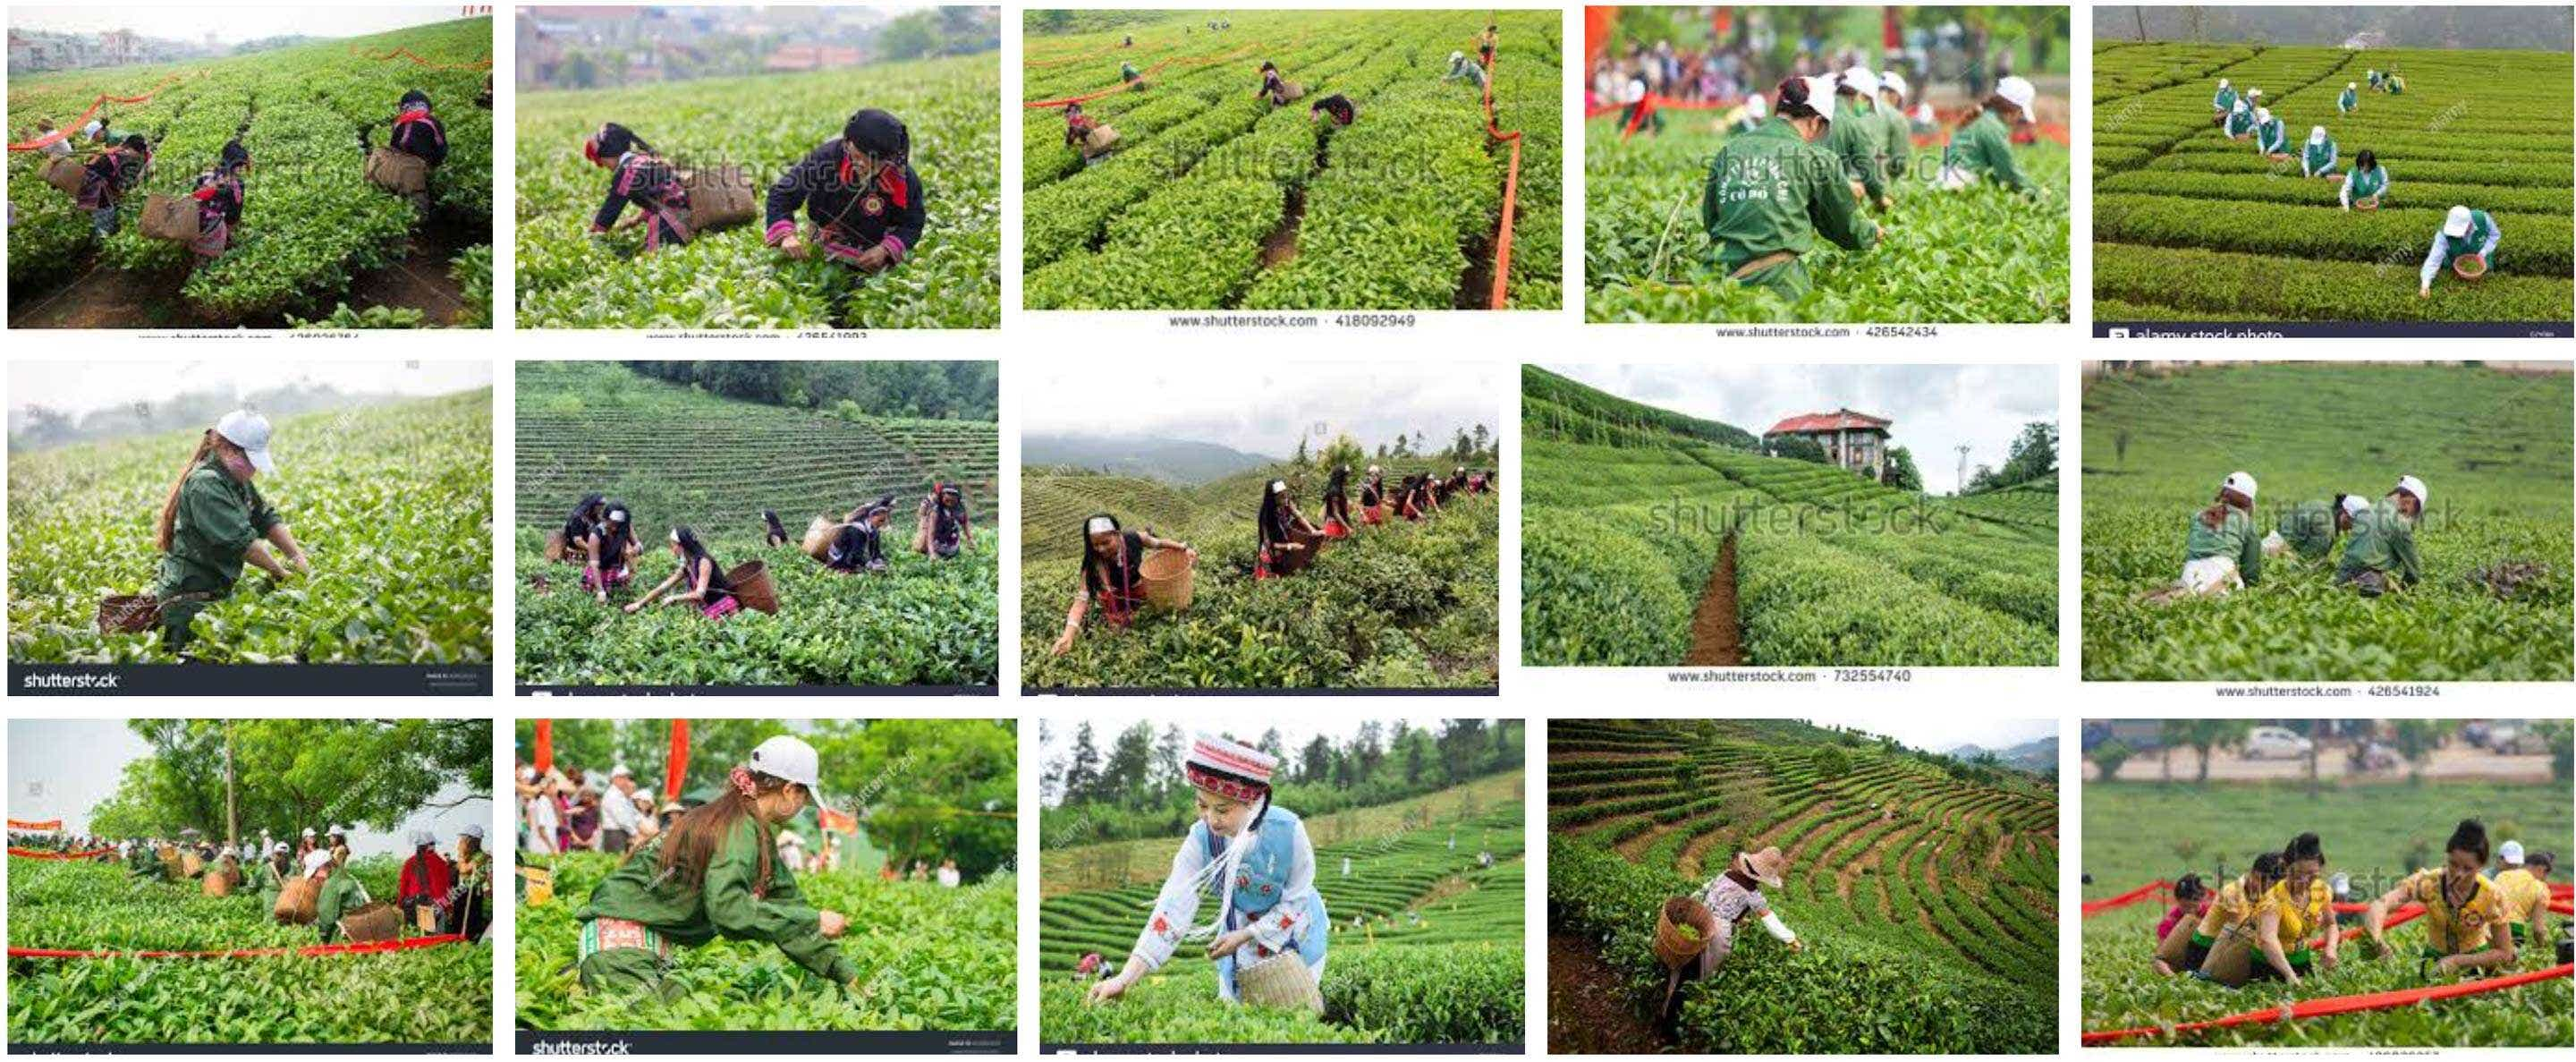 """google image search results 06-22-18 for """"tea farm stock photo china"""""""